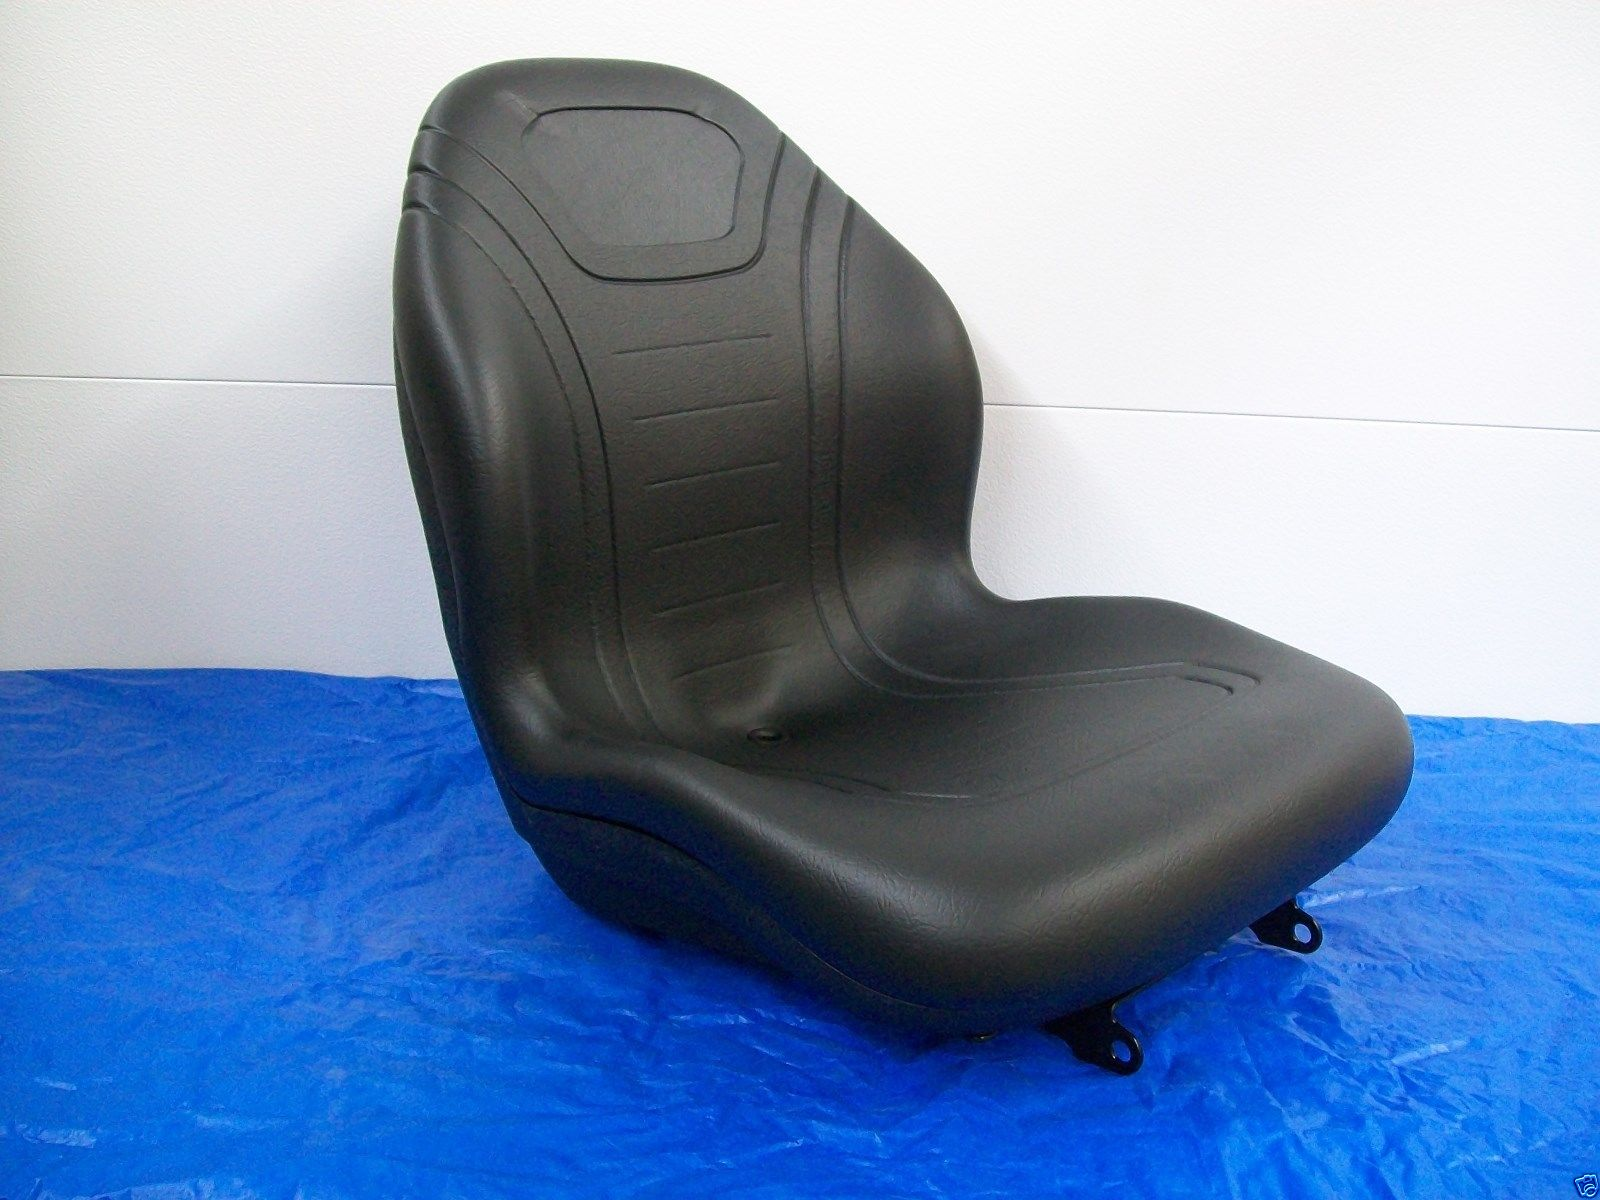 M805158 Black Seat for John Deere Compact Tractor 670 770 790 870 970 990 1070